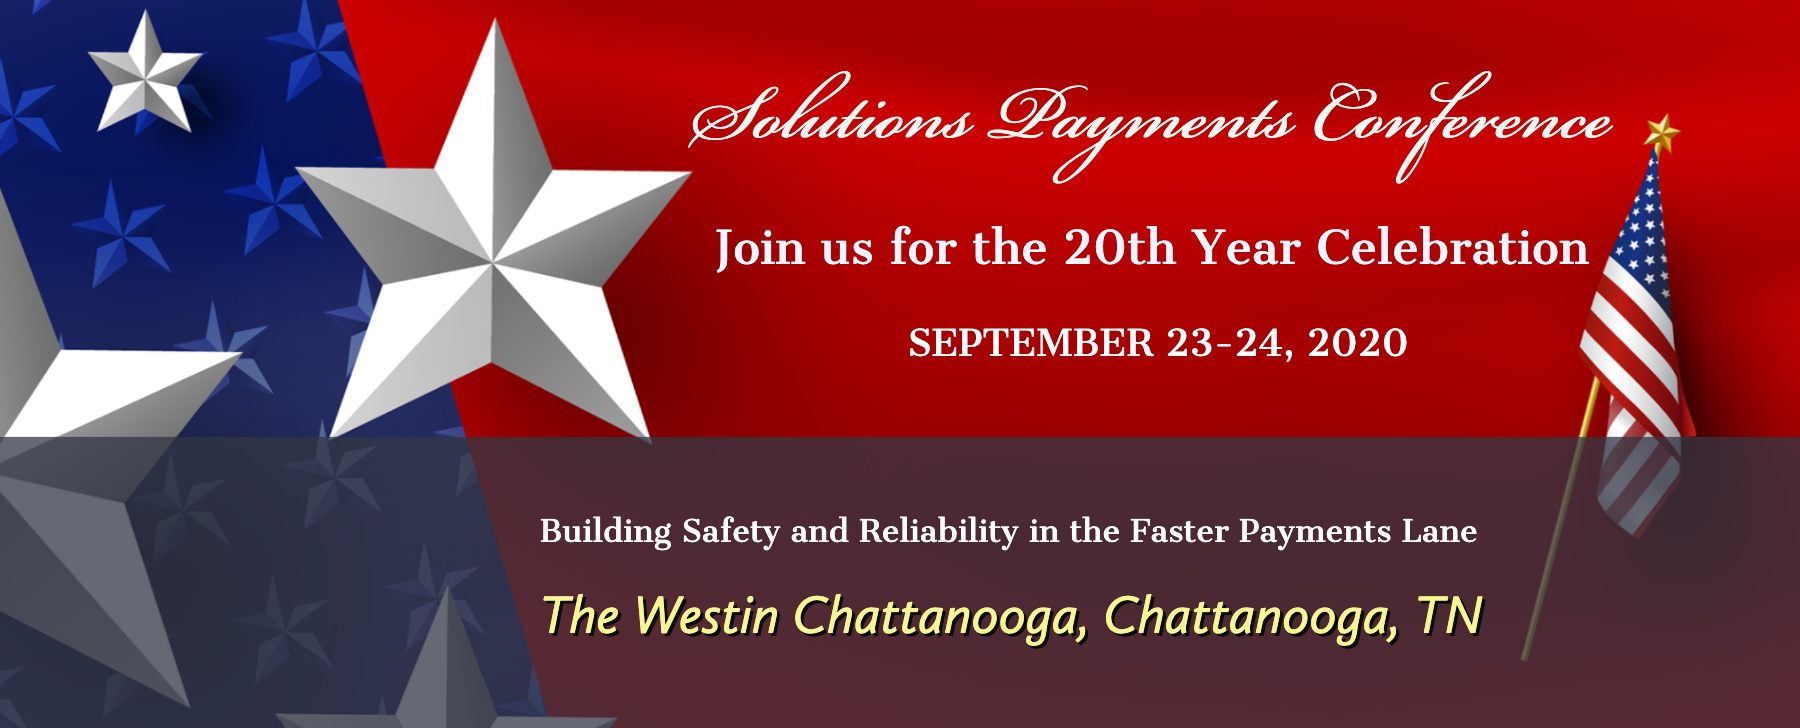 Solutions Conference